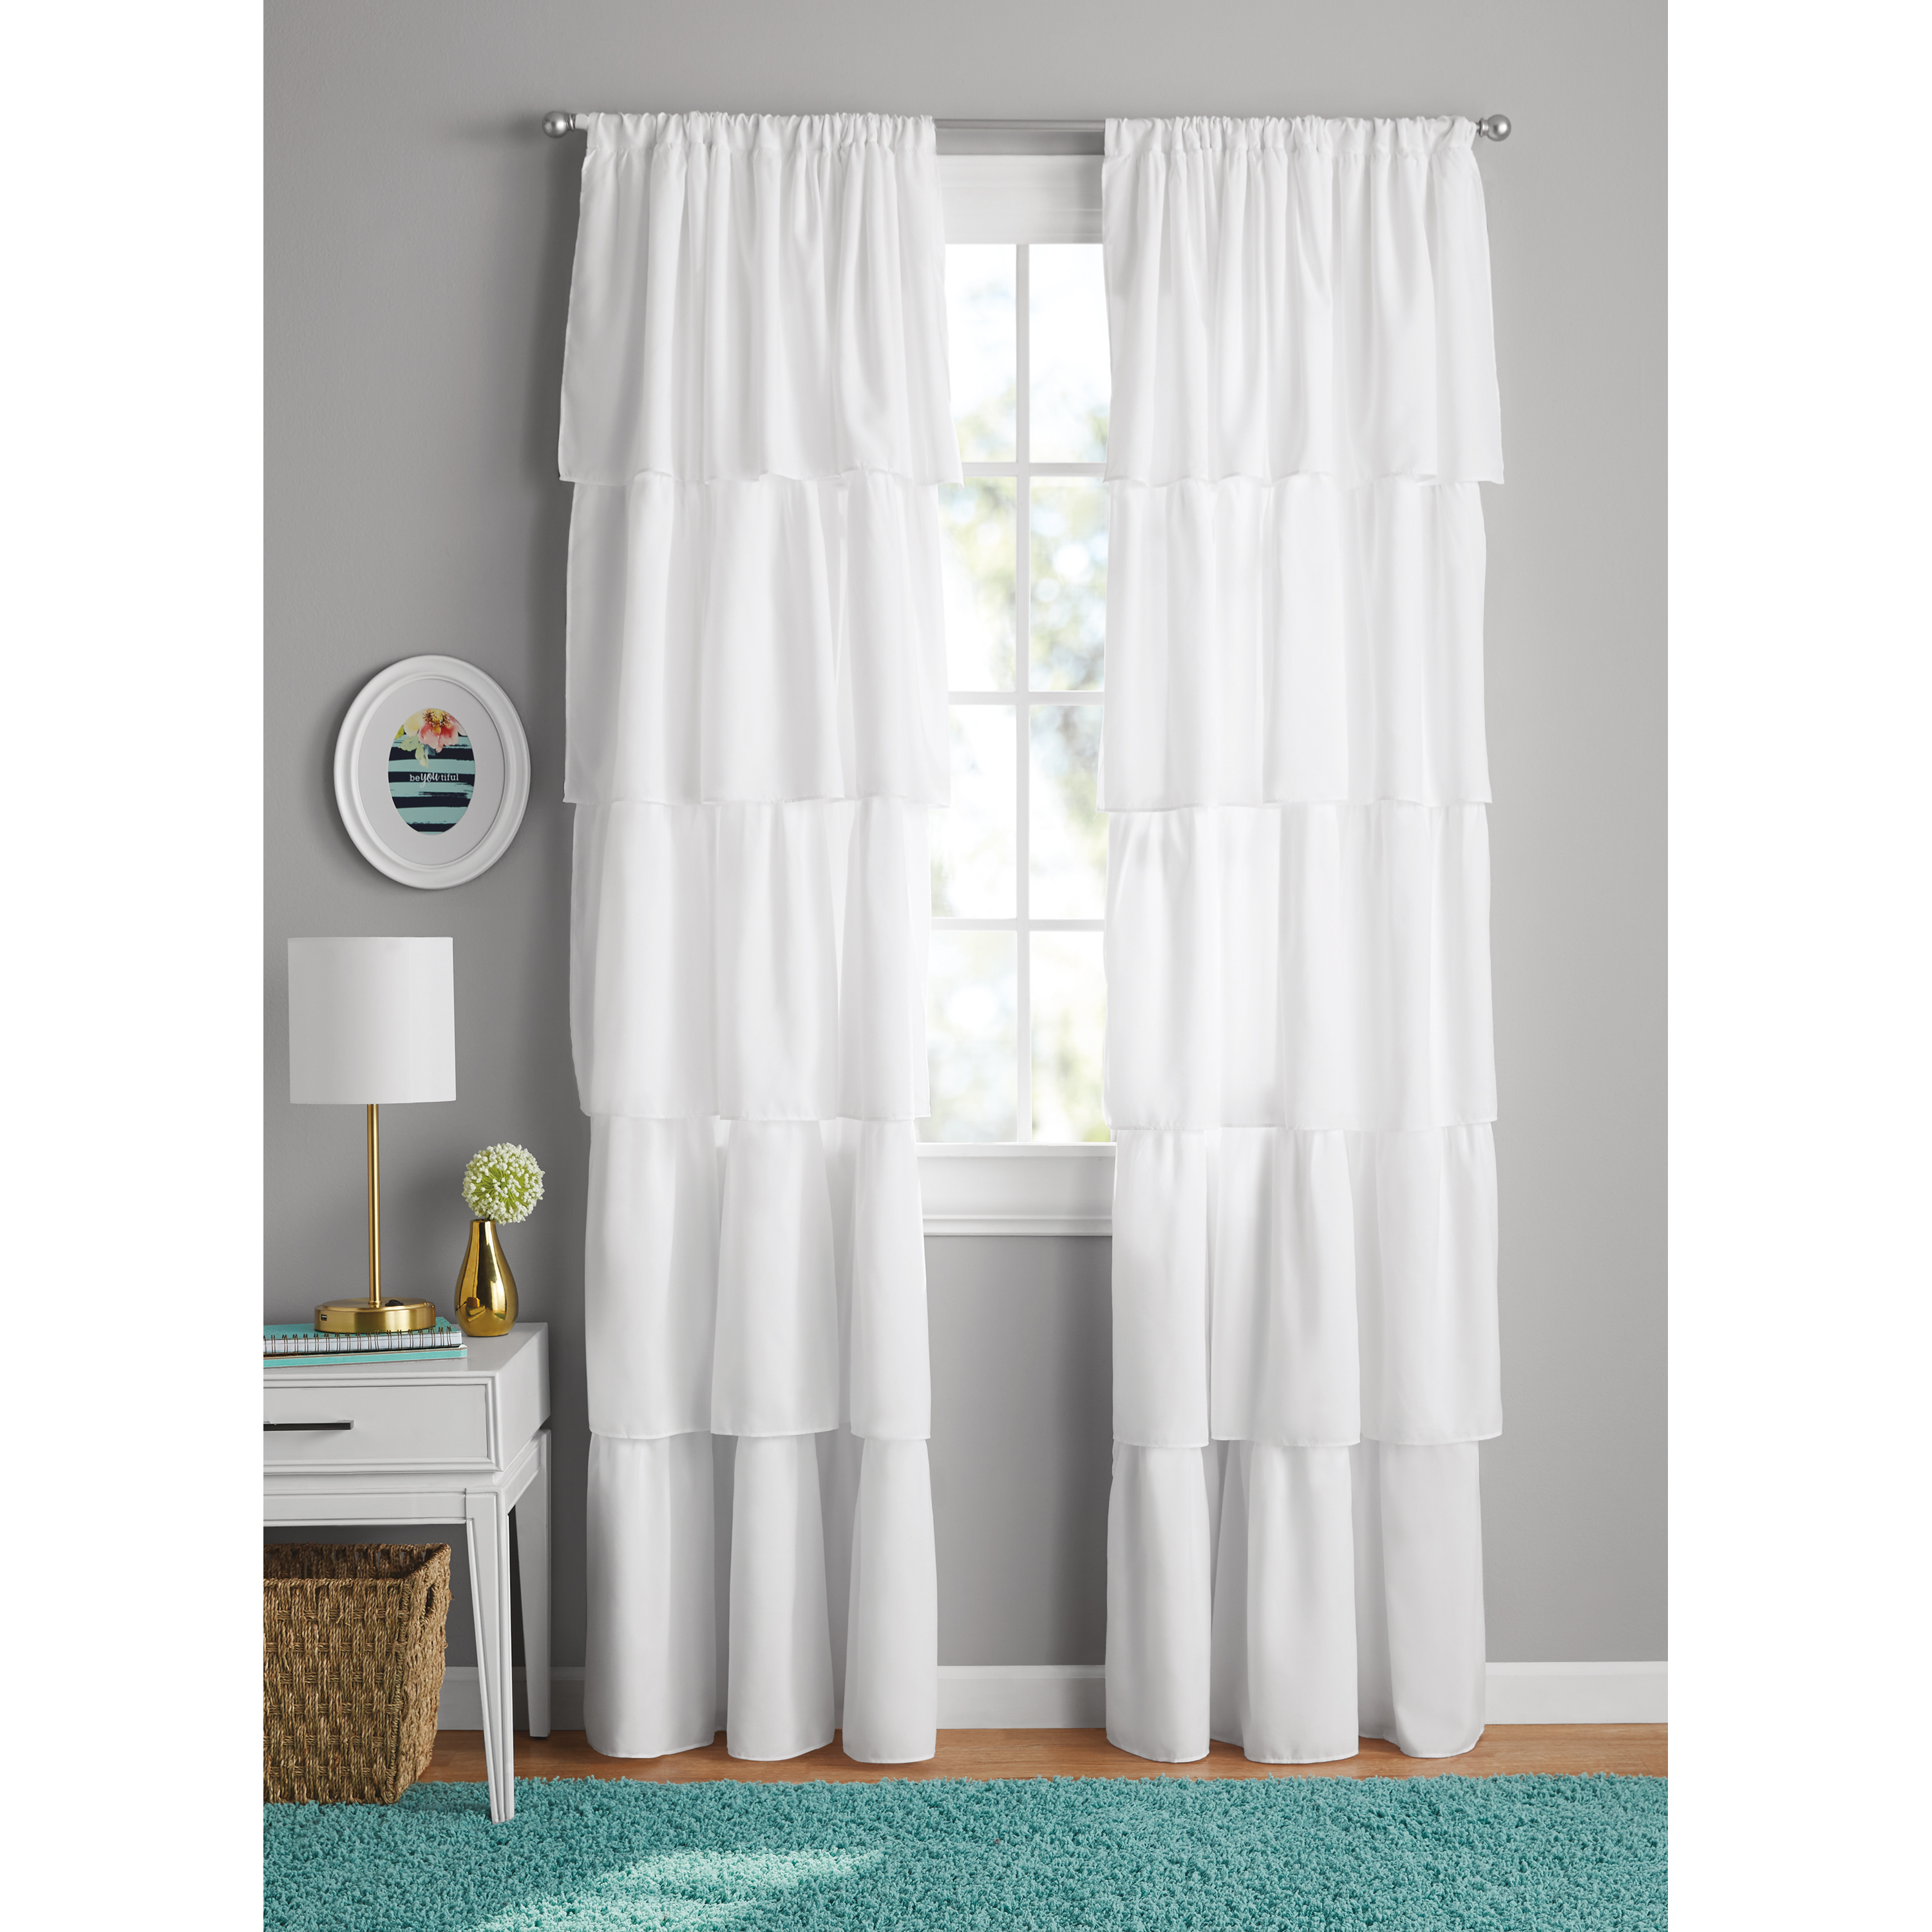 Attirant Your Zone Ruffle Girls Bedroom Curtain